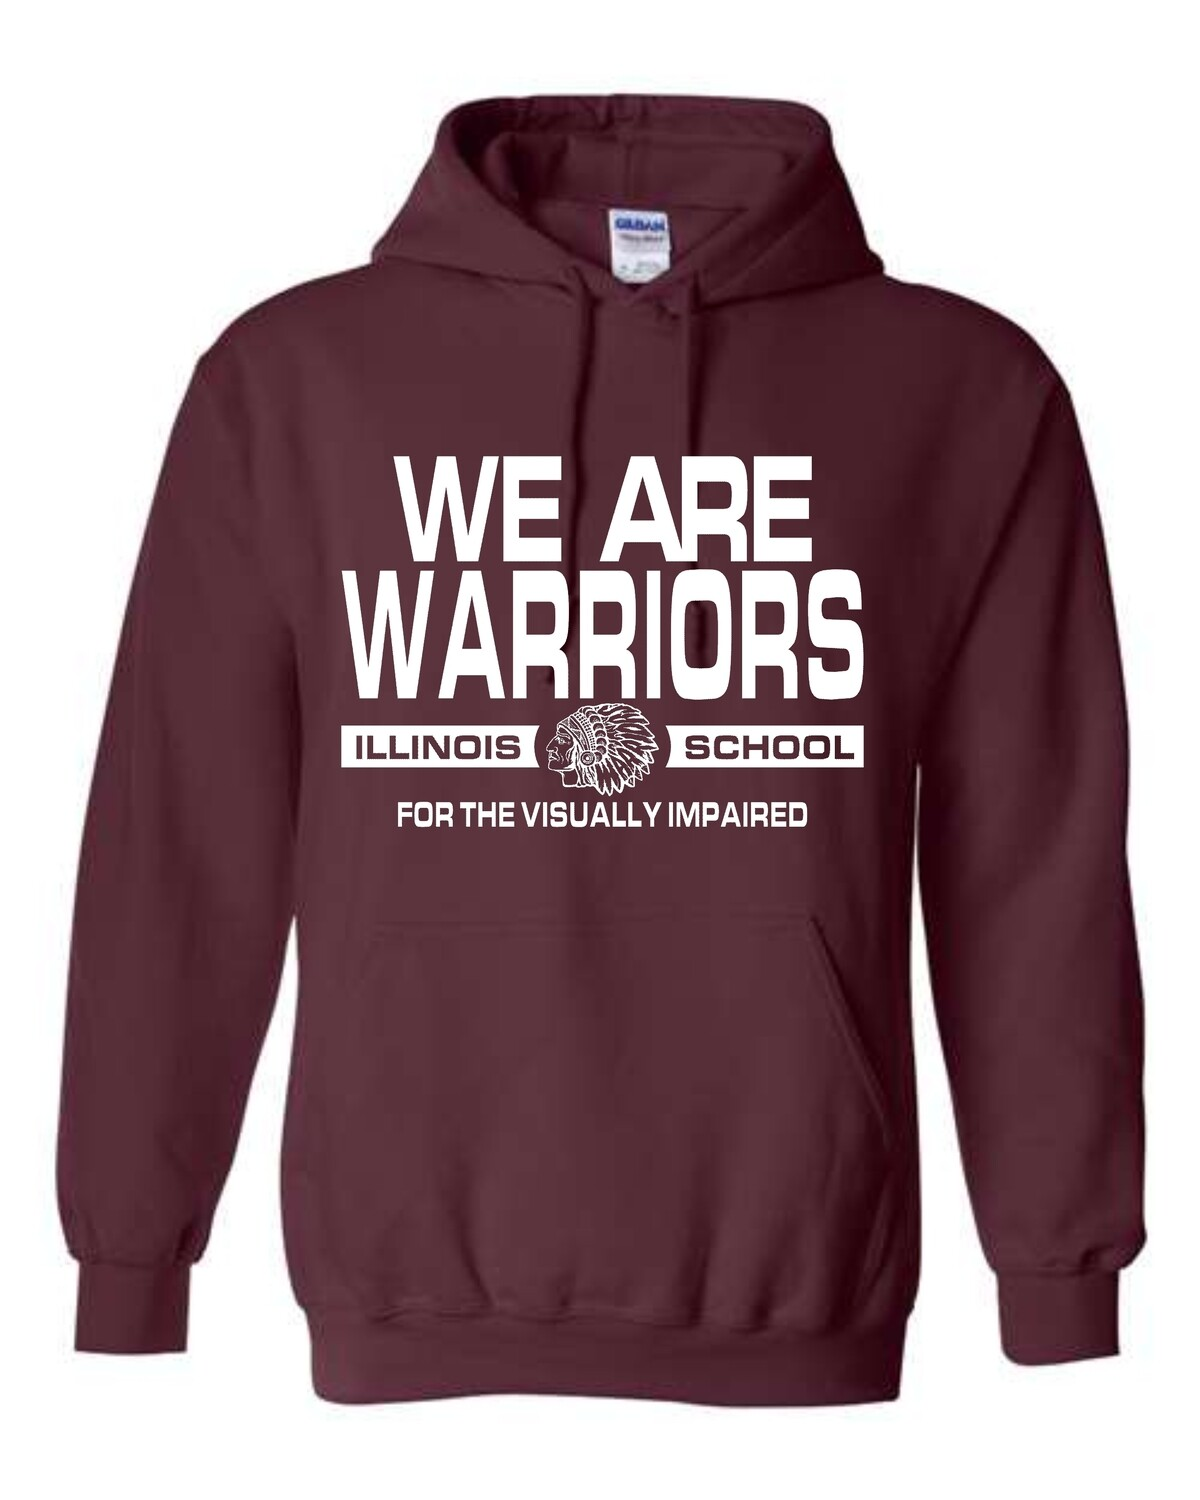 WARRIORS-WE ARE-18500